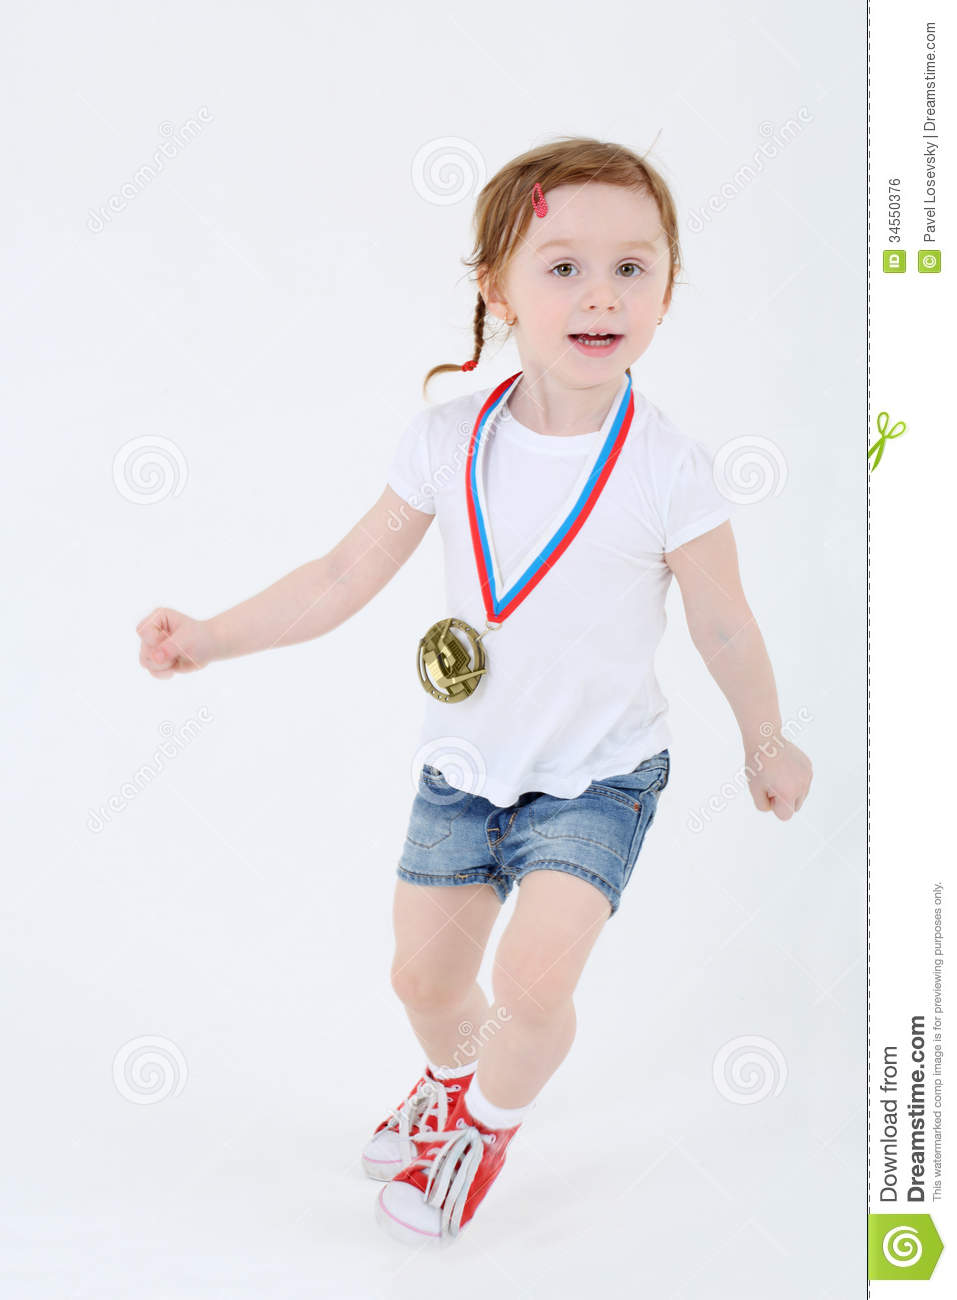 Little Girl In Shorts With Medal On Her Chest Runs Royalty ...